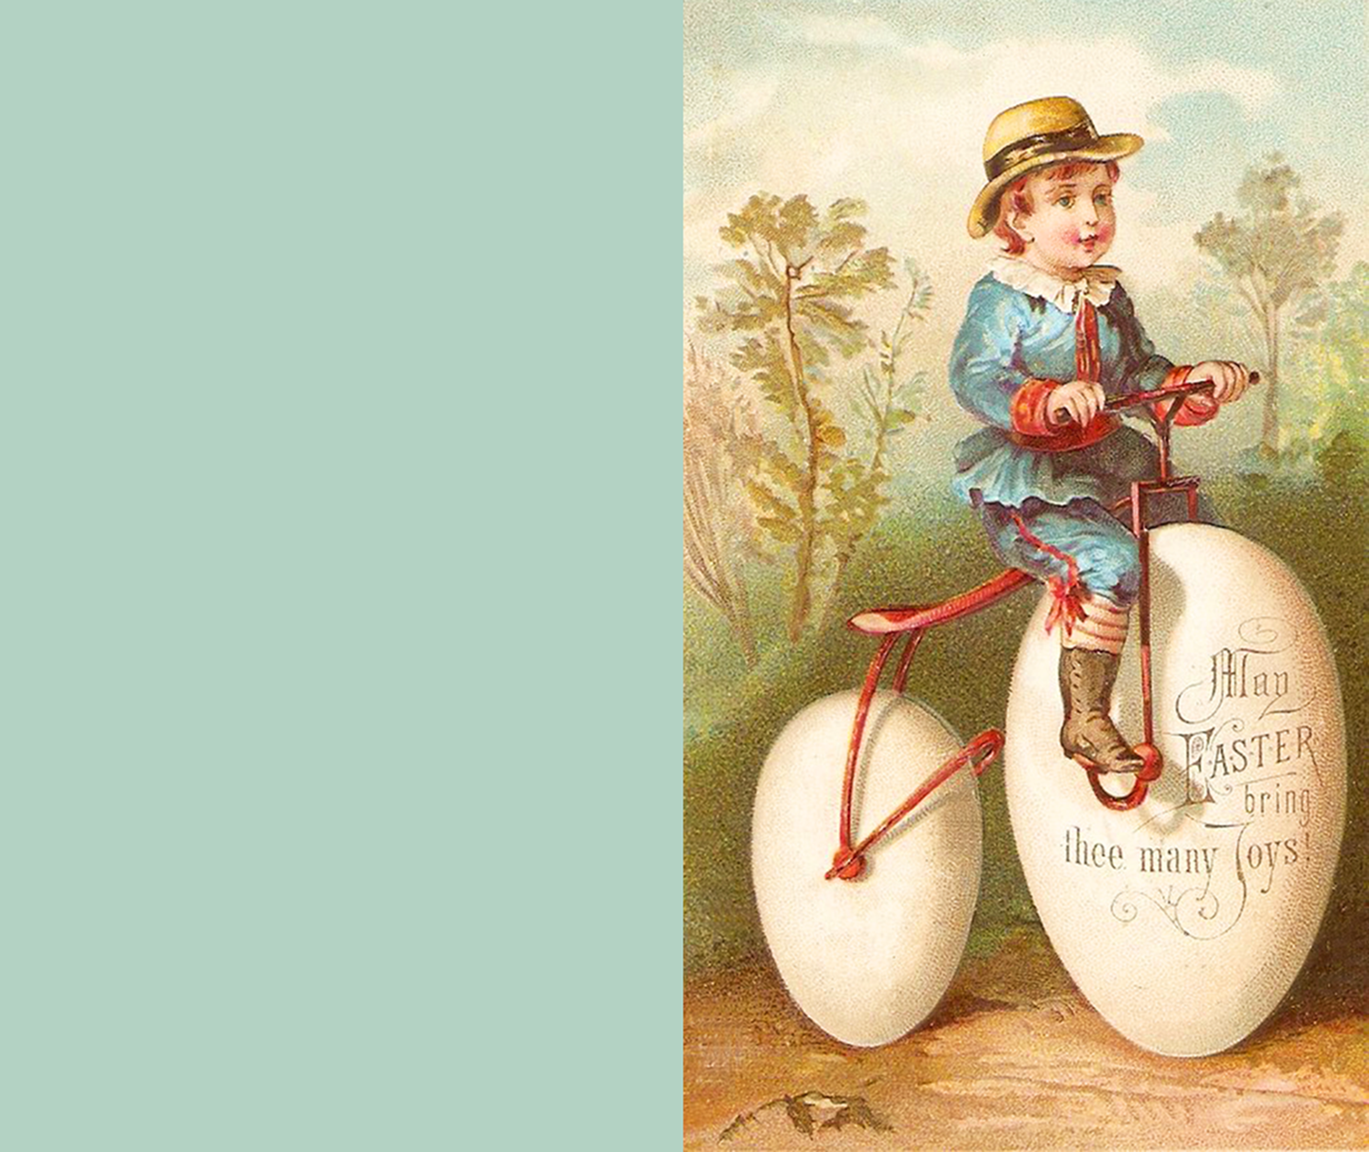 Printable vintage Easter greeting card with a little boy on a bike.